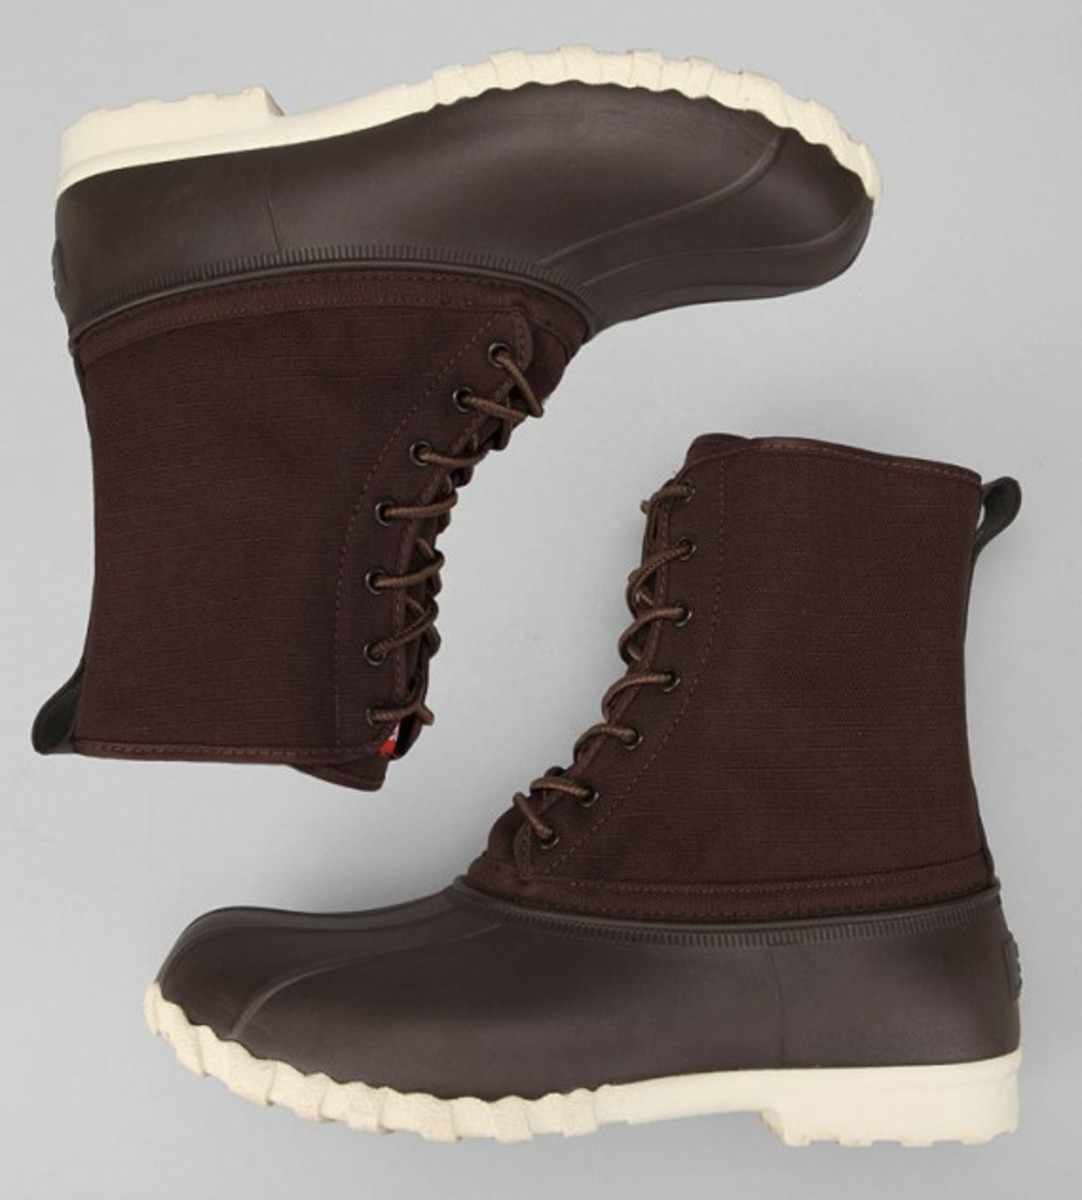 native-jimmy-duck-boots-brown-01